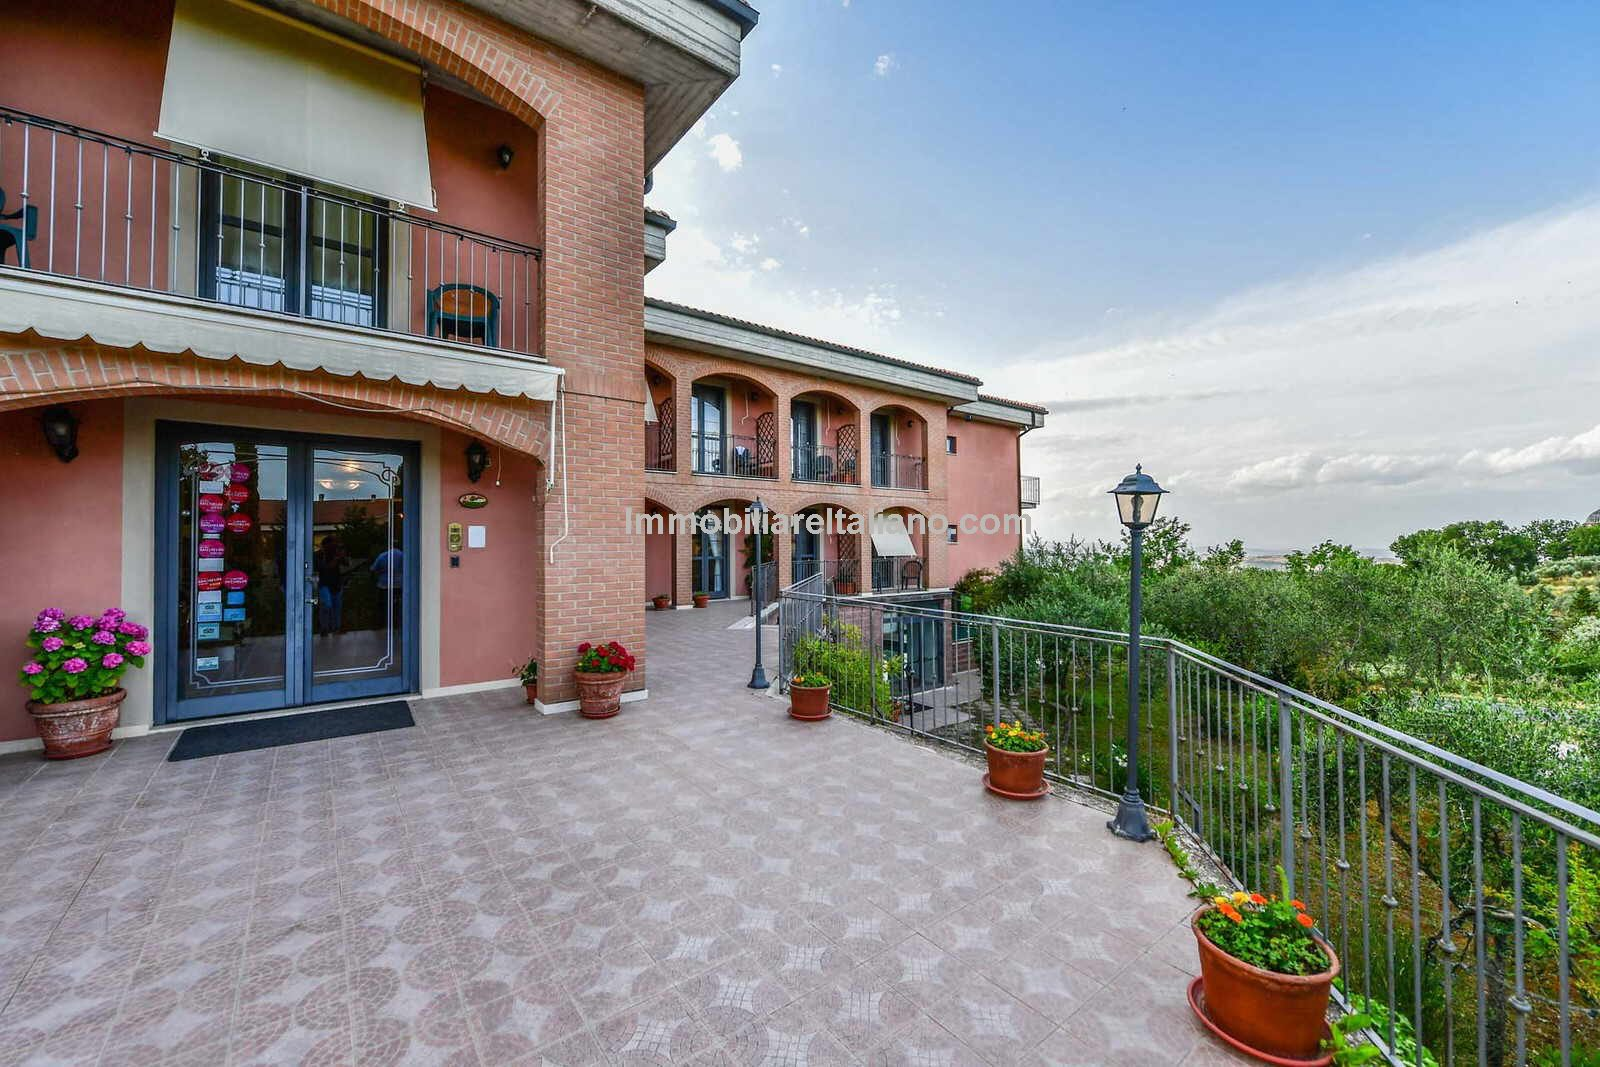 Hotel in Tuscany for sale